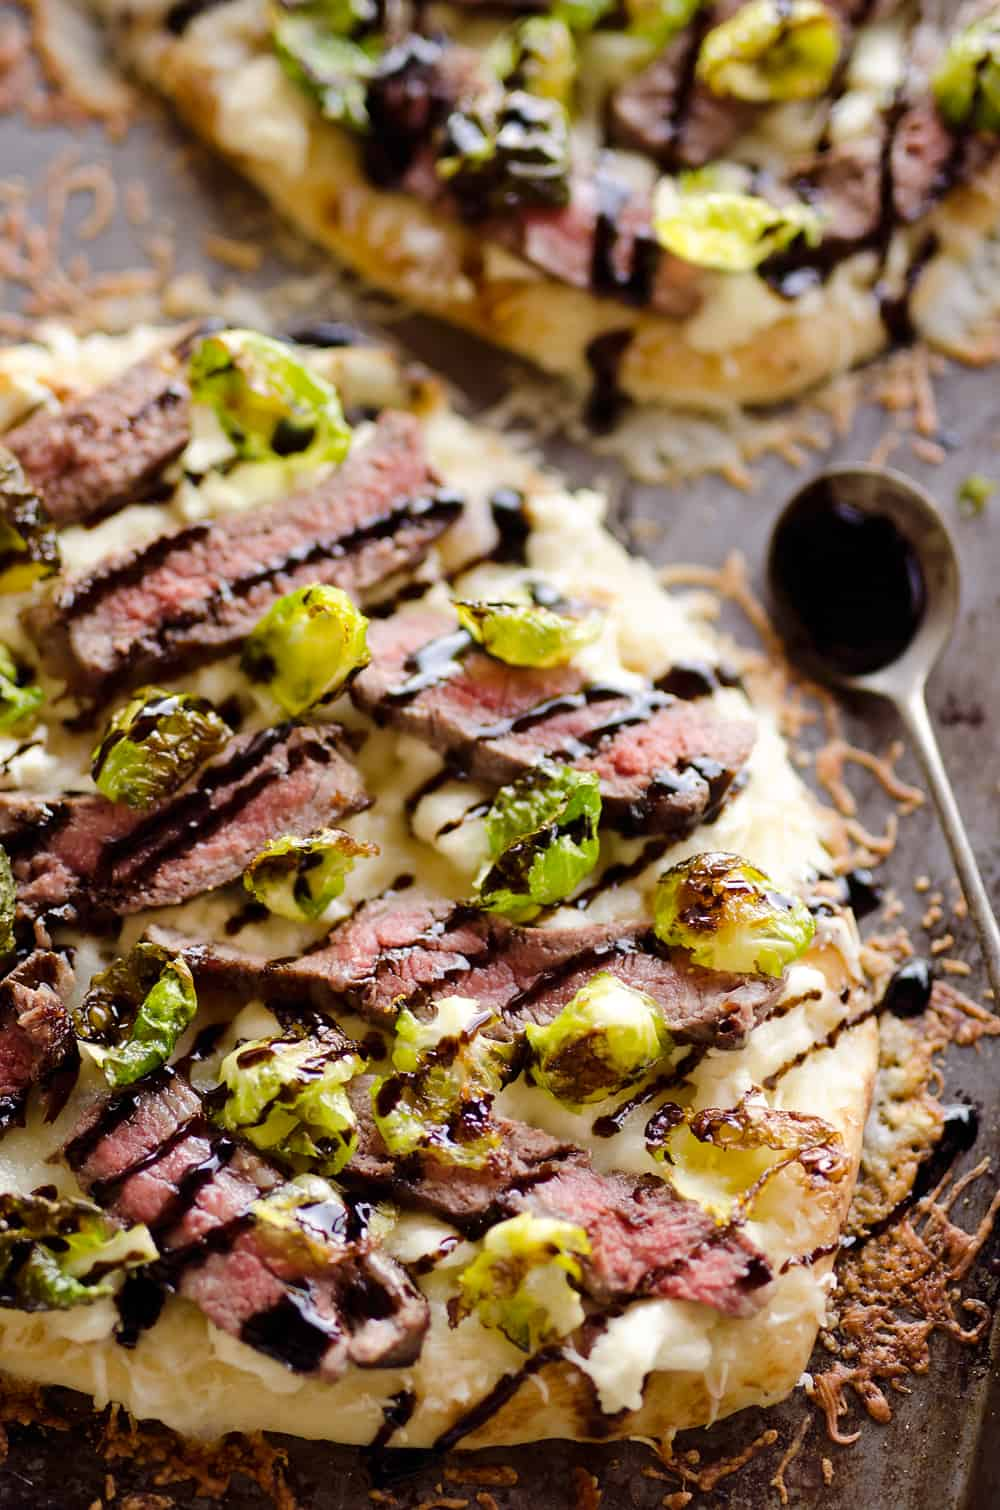 Steak, Goat Cheese & Roasted Brussels Sprout Flatbread is a hearty dinner idea bursting with bold flavors. A chewy naan bread is topped with goat cheese, grilled steak, roasted brussels sprout leaves and a balsamic glaze for a delicious and unique recipe you will make again and again!